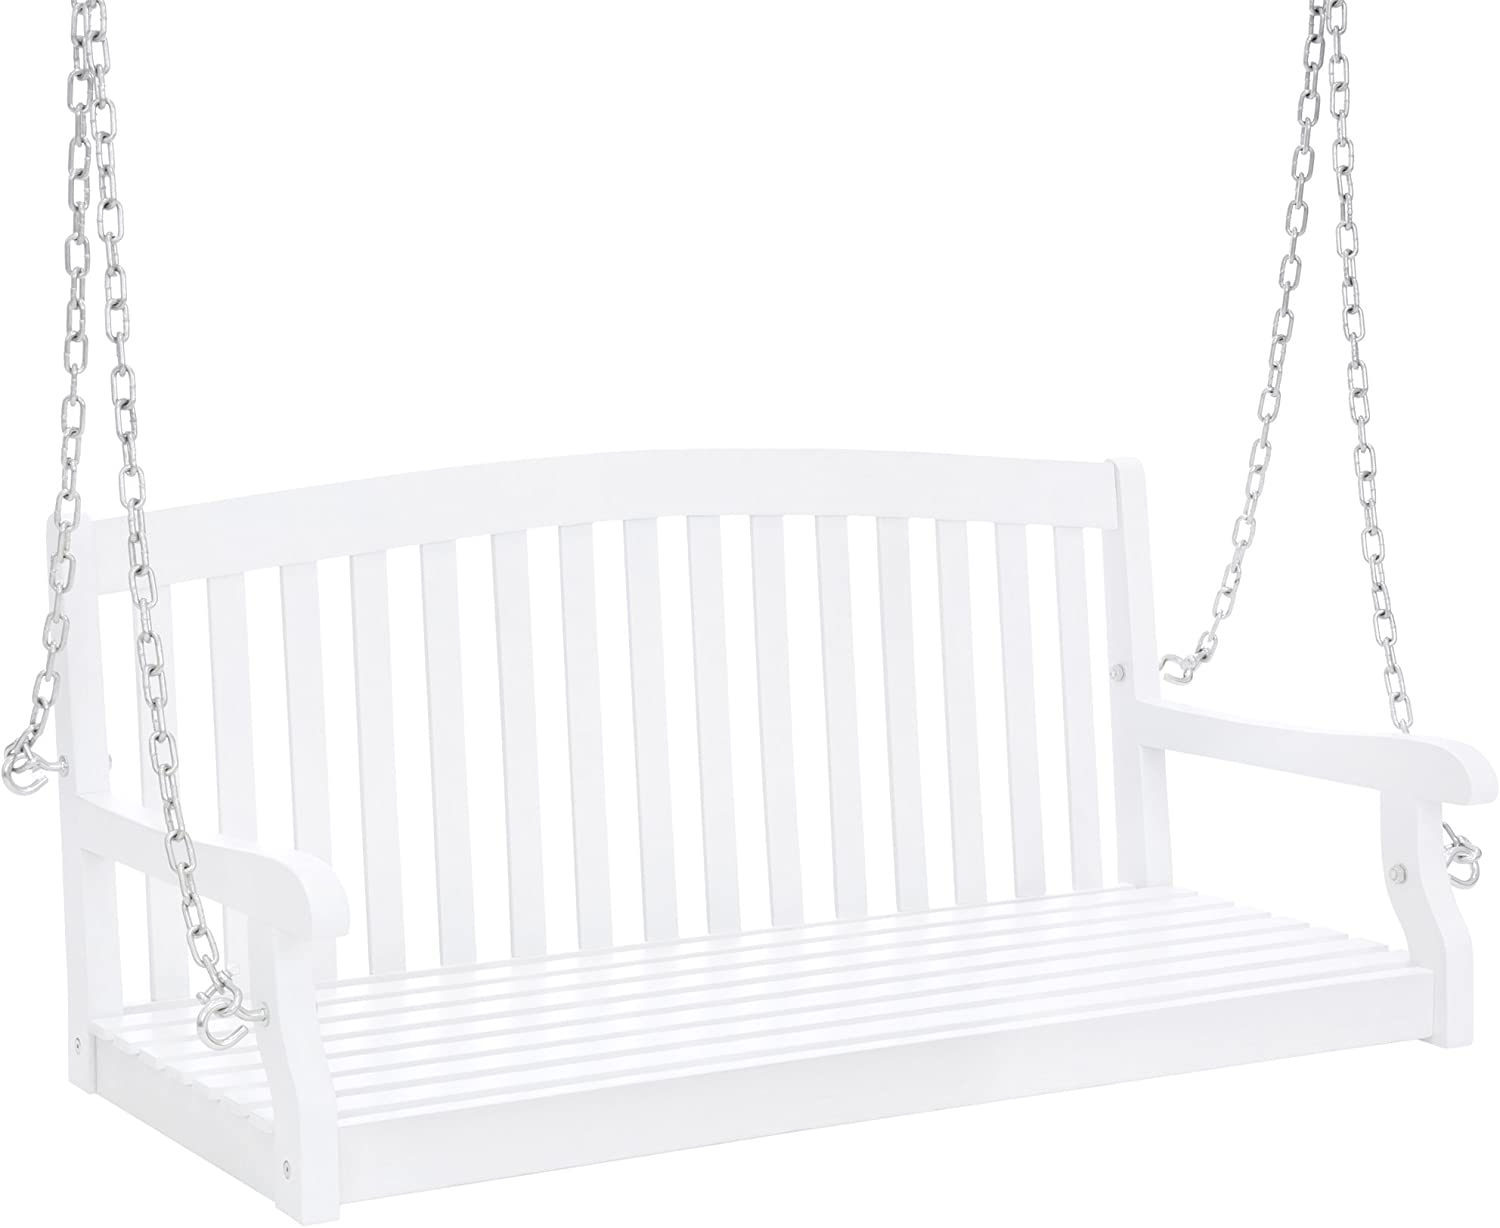 Best Choice Products 48-inch 3-Seater Wooden Curved Back Hanging Porch Swing Bench Conversation Furniture w/Metal Chains for Backyard, Front Yard, Patio, Deck, Garden, White